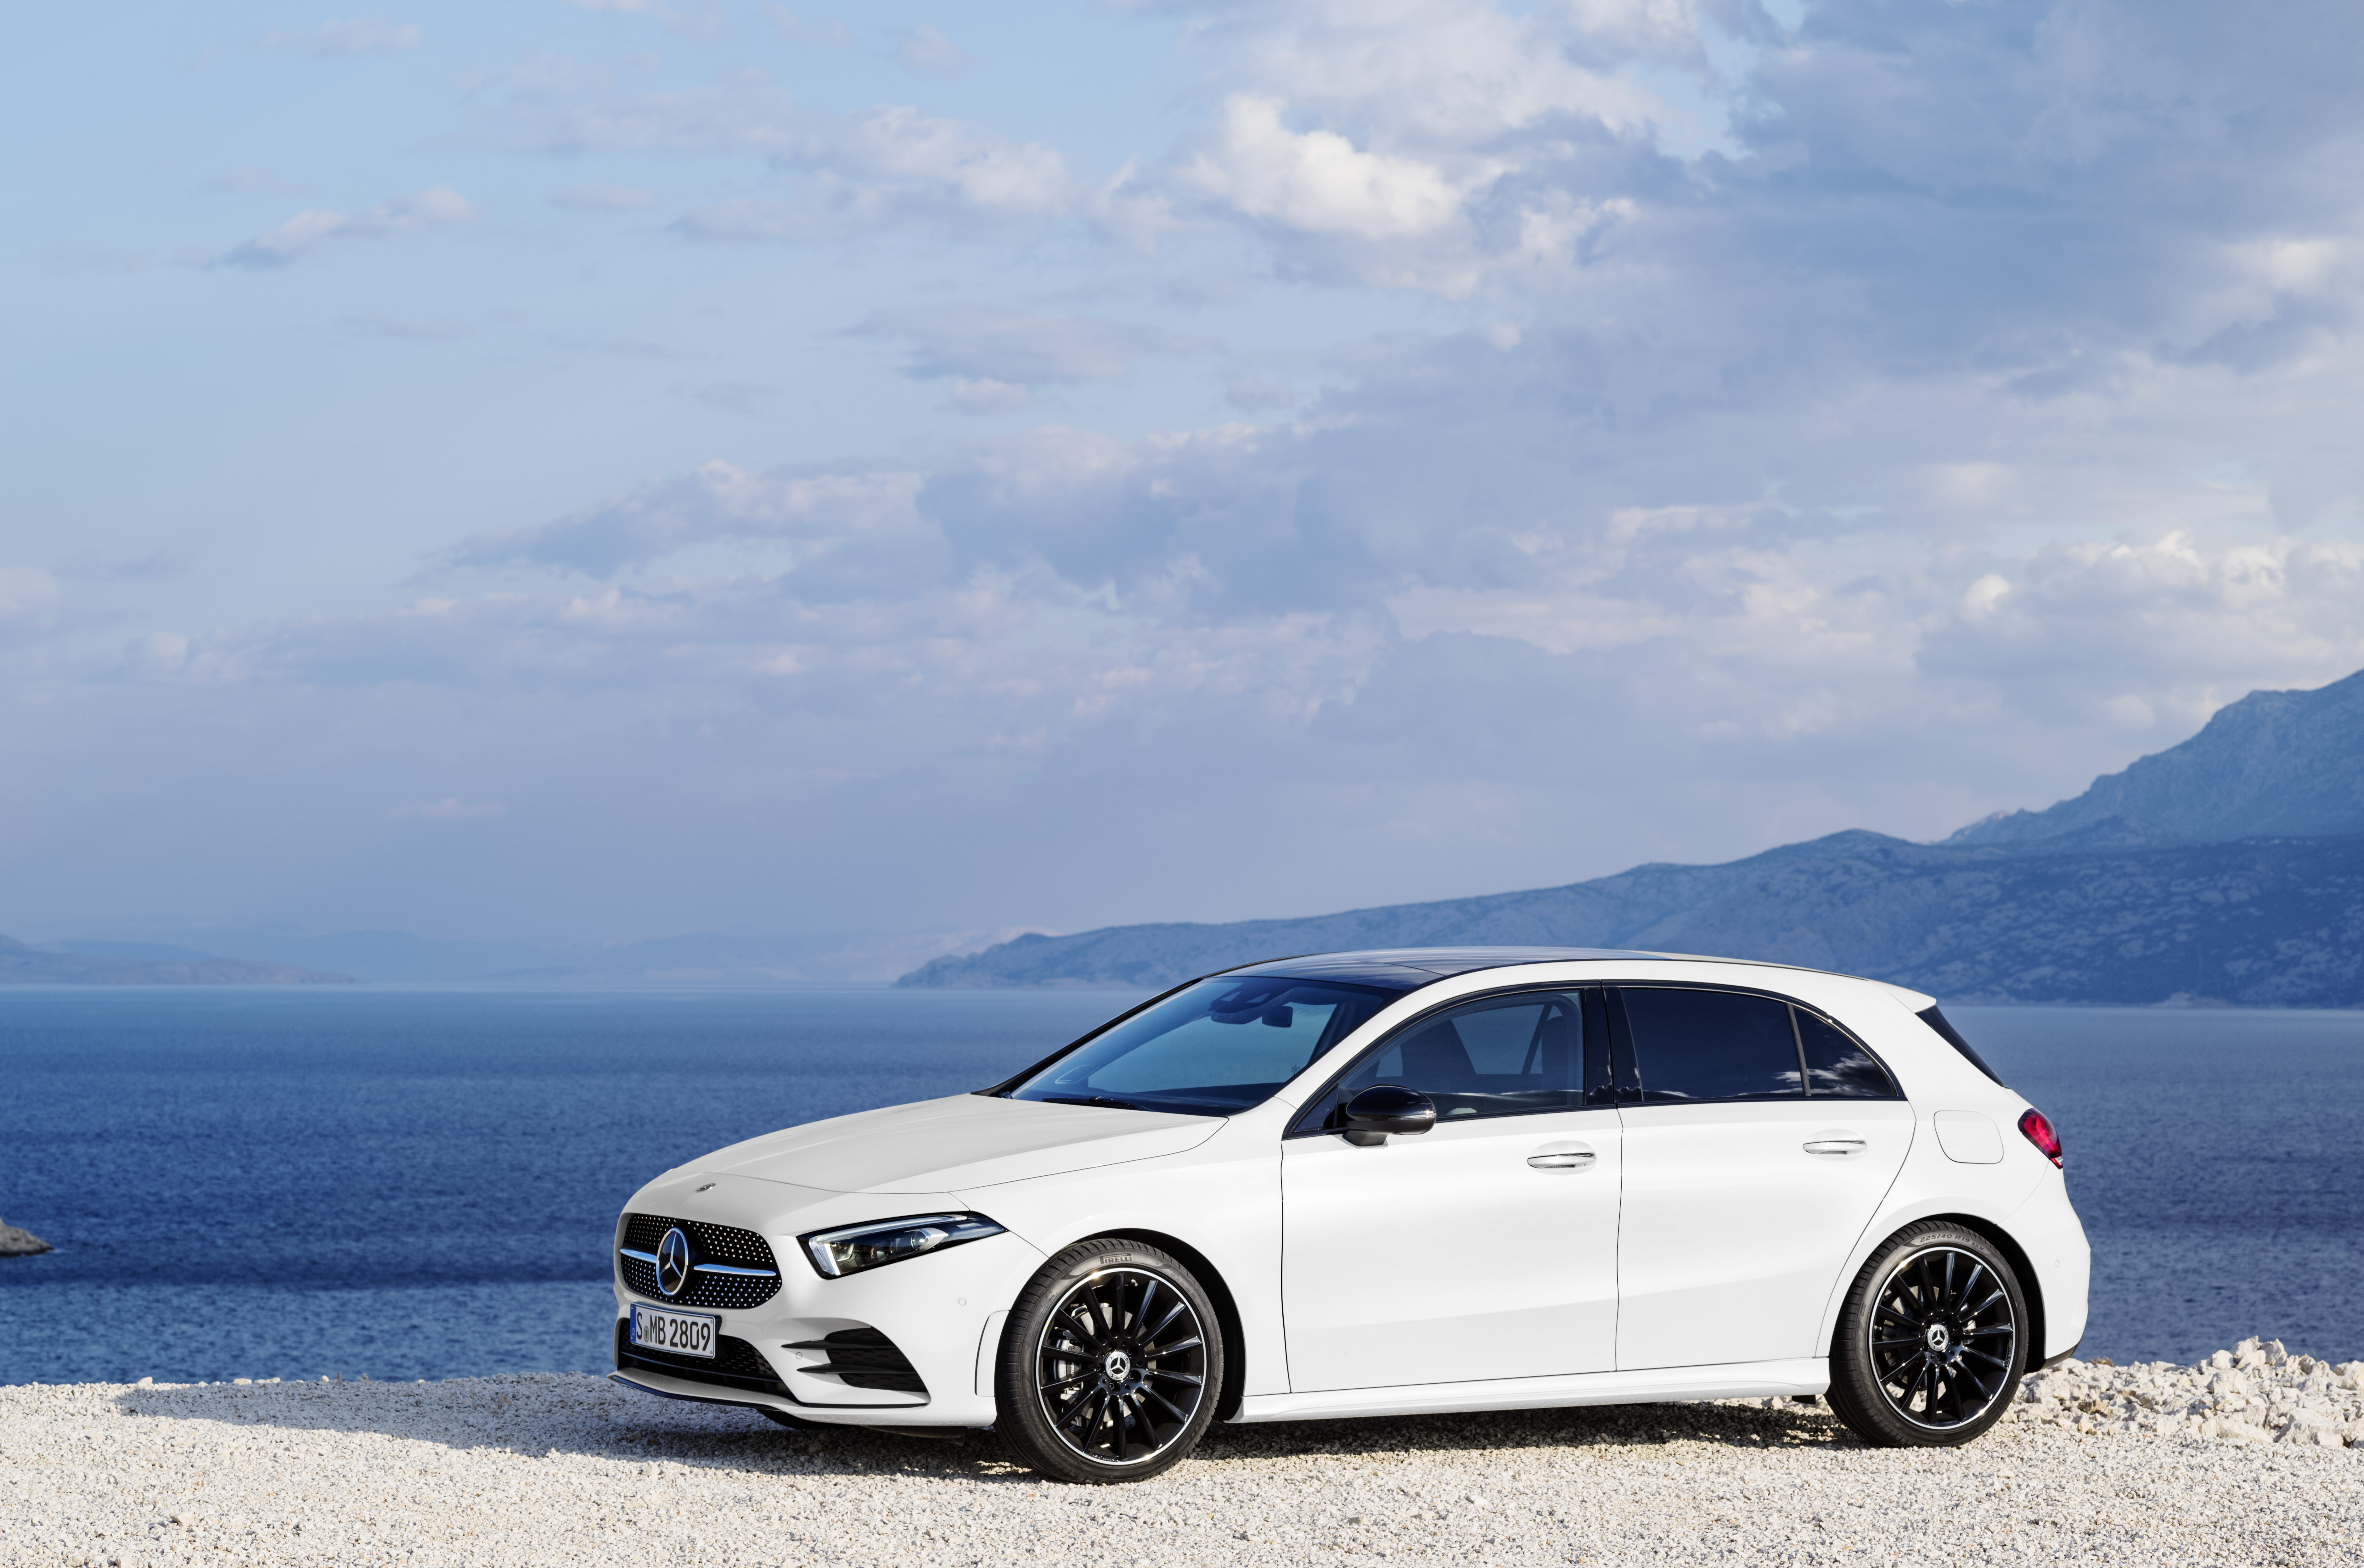 White Mercedes Benz A Class parked side on by the sea